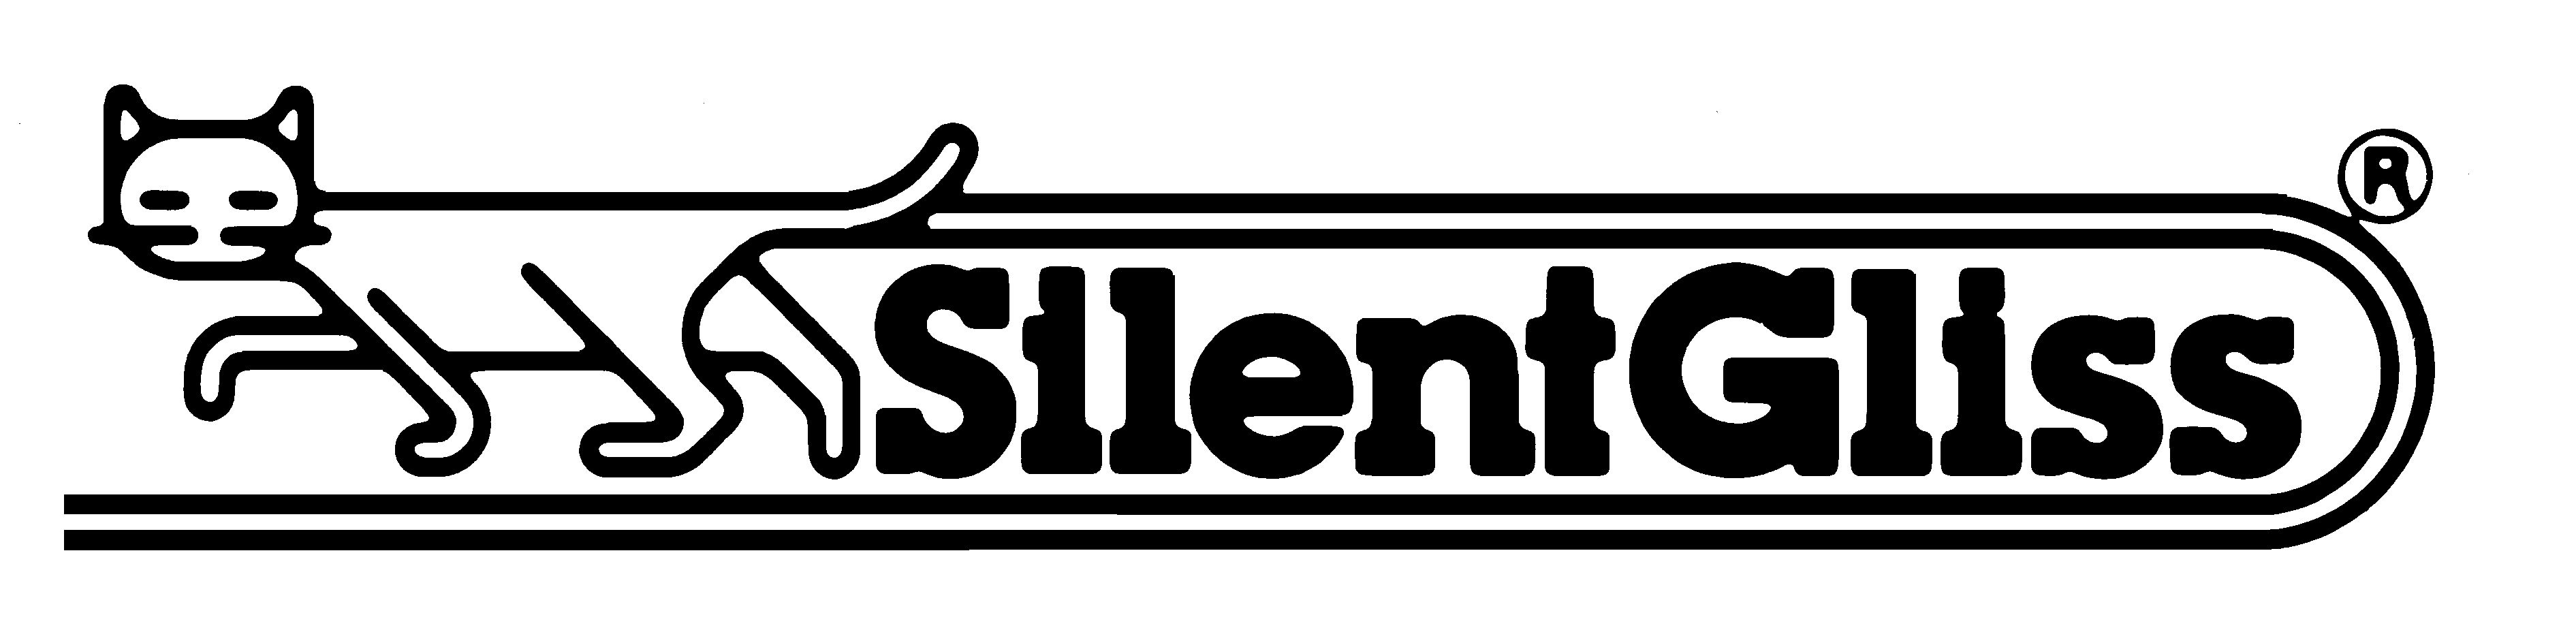 Image result for Silent gliss